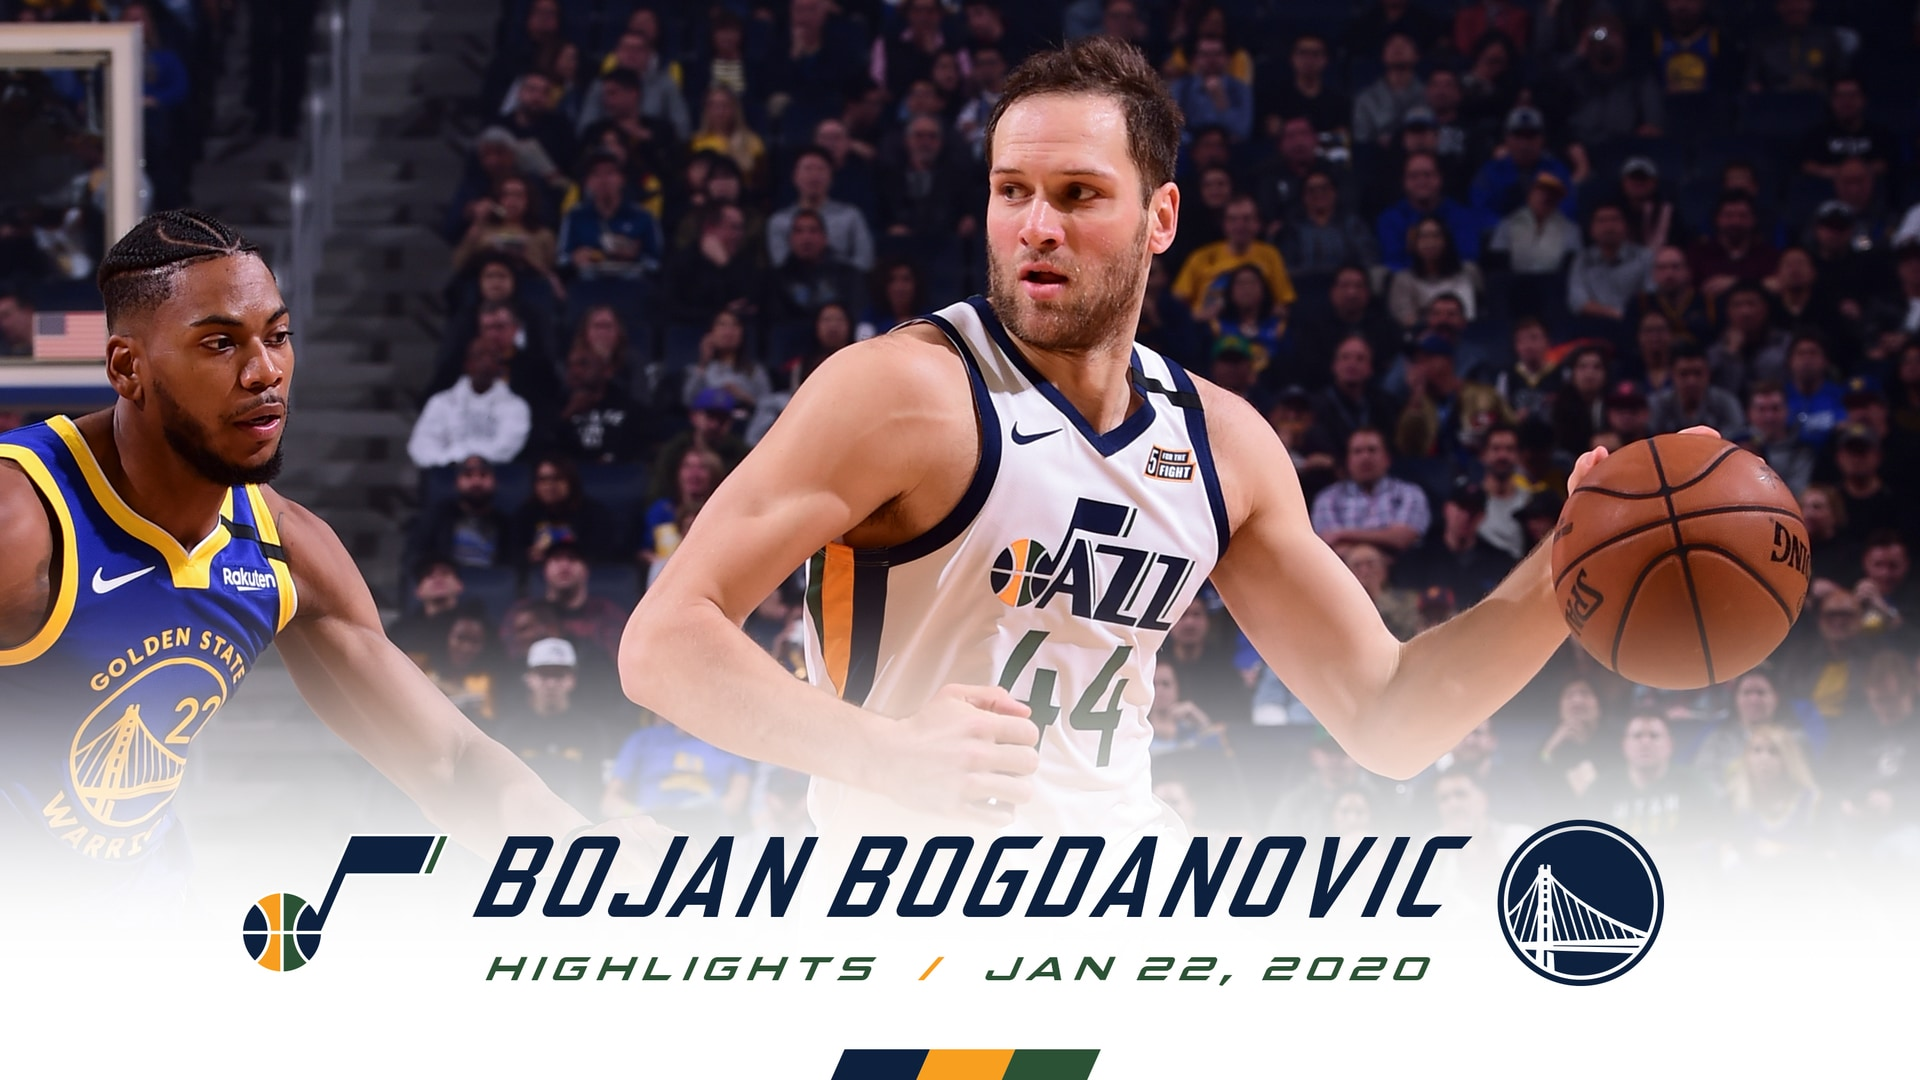 Highlights: Bojan Bogdanović—18 points, 4 3pm